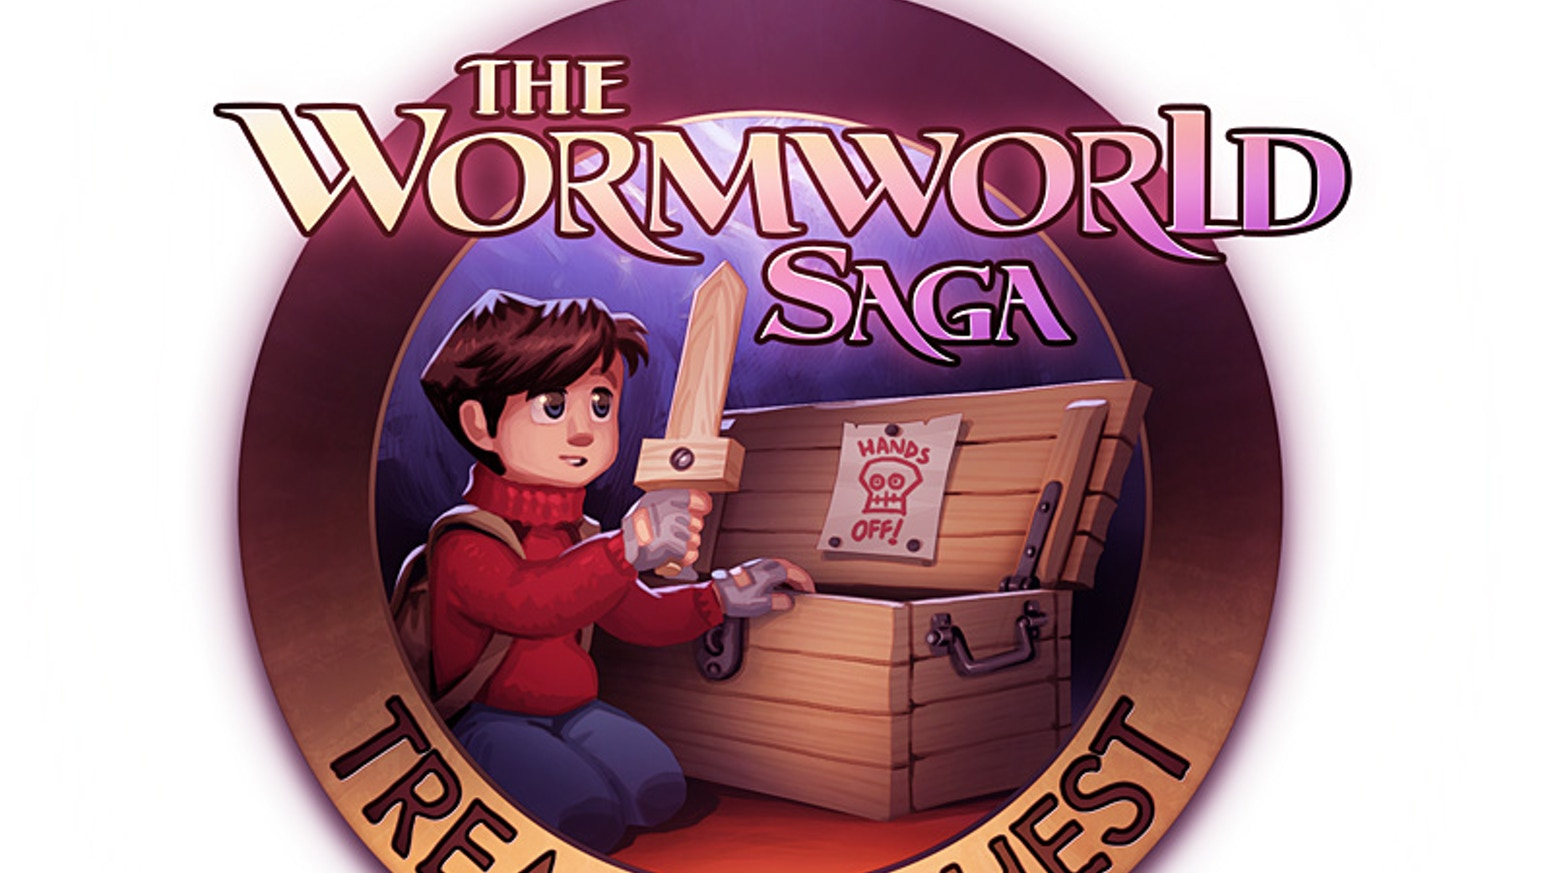 We open up a treasure chest full of beautiful items for you to support the Wormworld Saga Digital Graphic Novel!